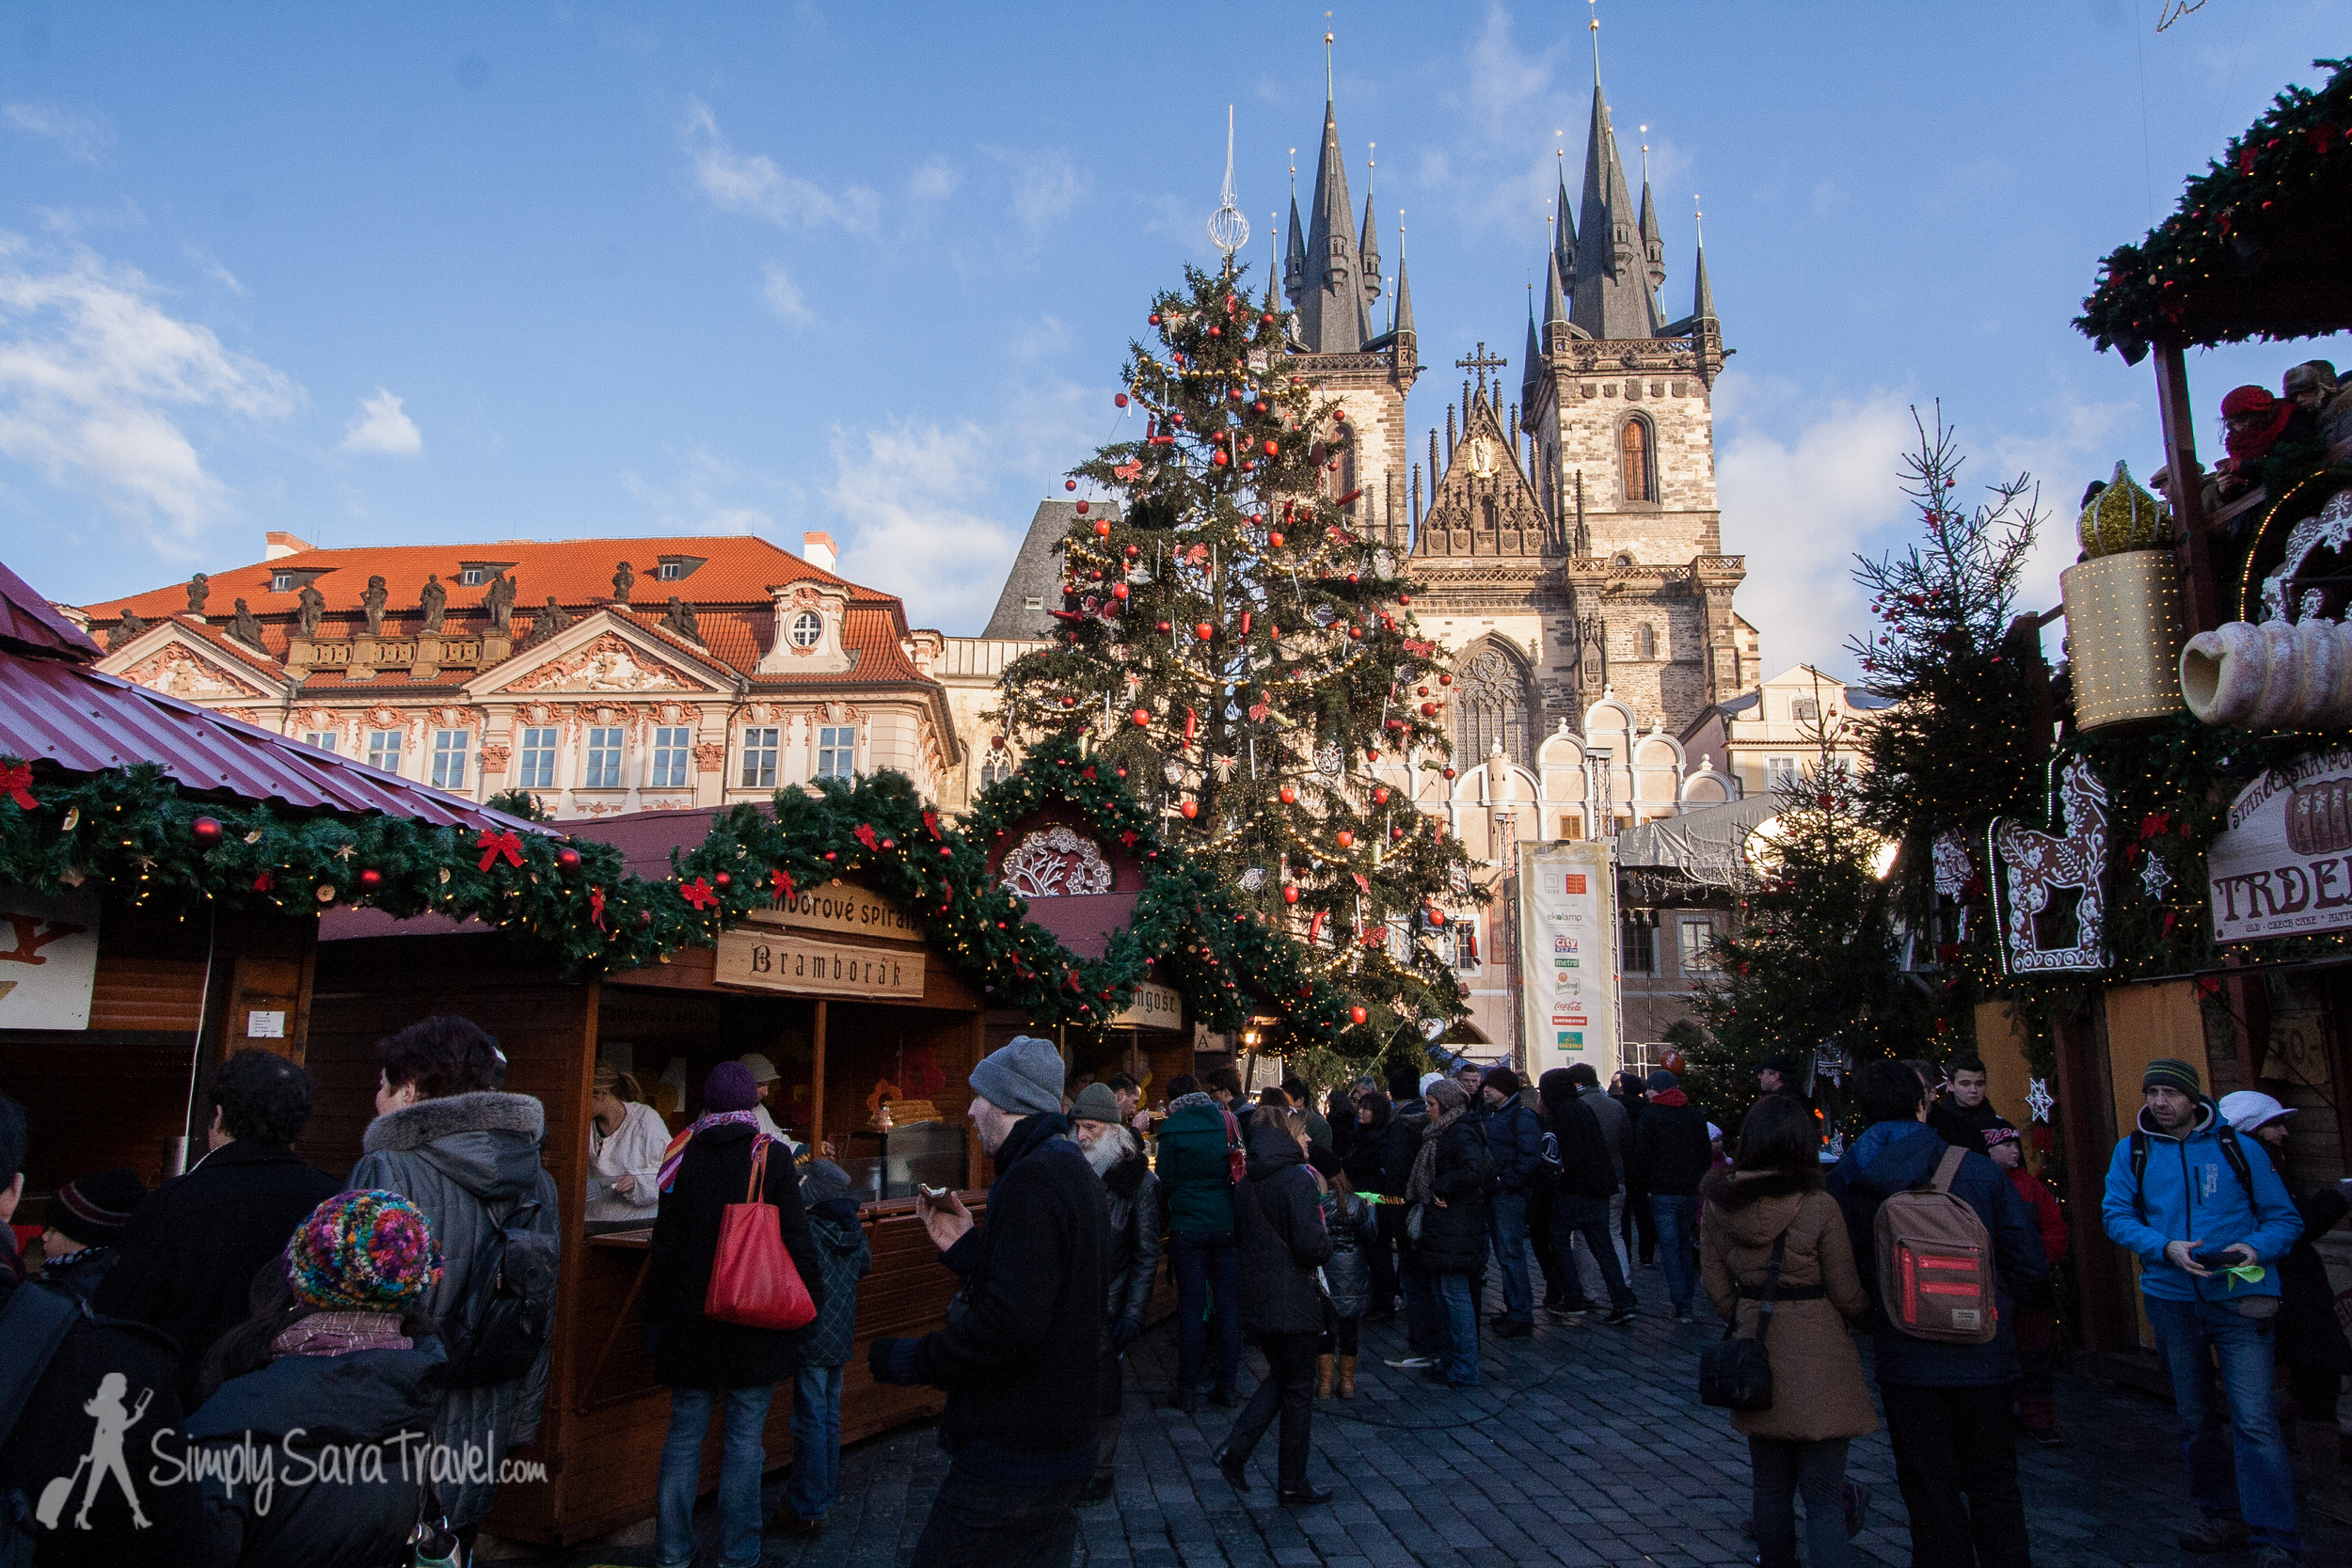 European cities get all dressed up for Christmas. Prague was such a beautiful city in its own right and became even more romantic with its markets. This is at the Old Town Square (Staroměstské náměstí).